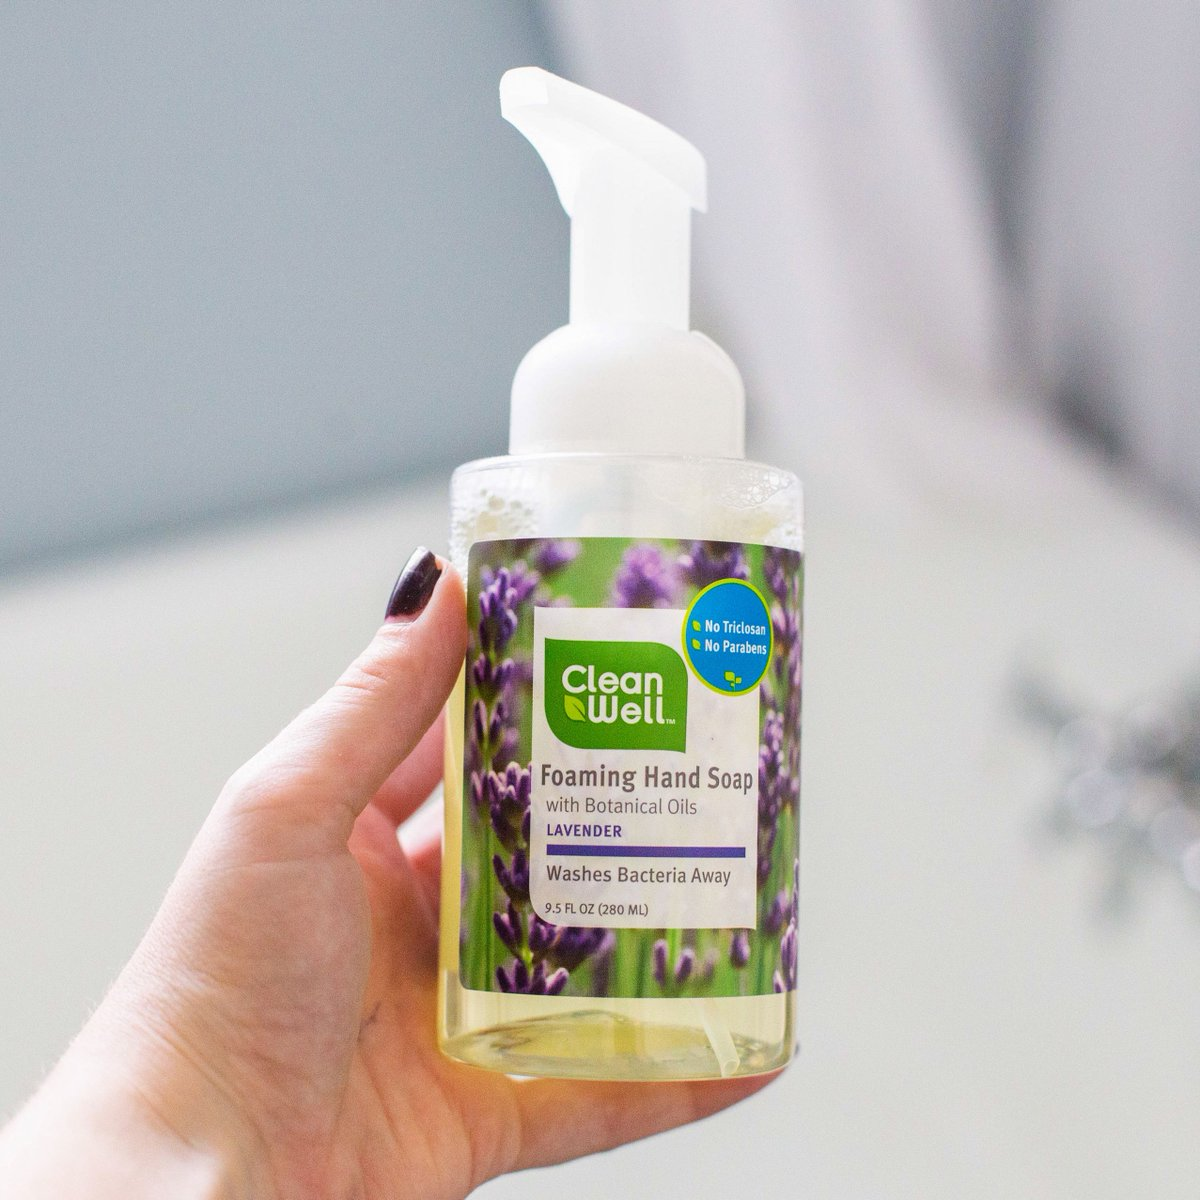 Stay calm during cold and flu season with our fresh lavender scent. . . . #botanical #thyme #lavender #plantbased #noalcohol #germfree #handwash #freshscent #stayclean #kidsafe https://t.co/tby5VSVPQh